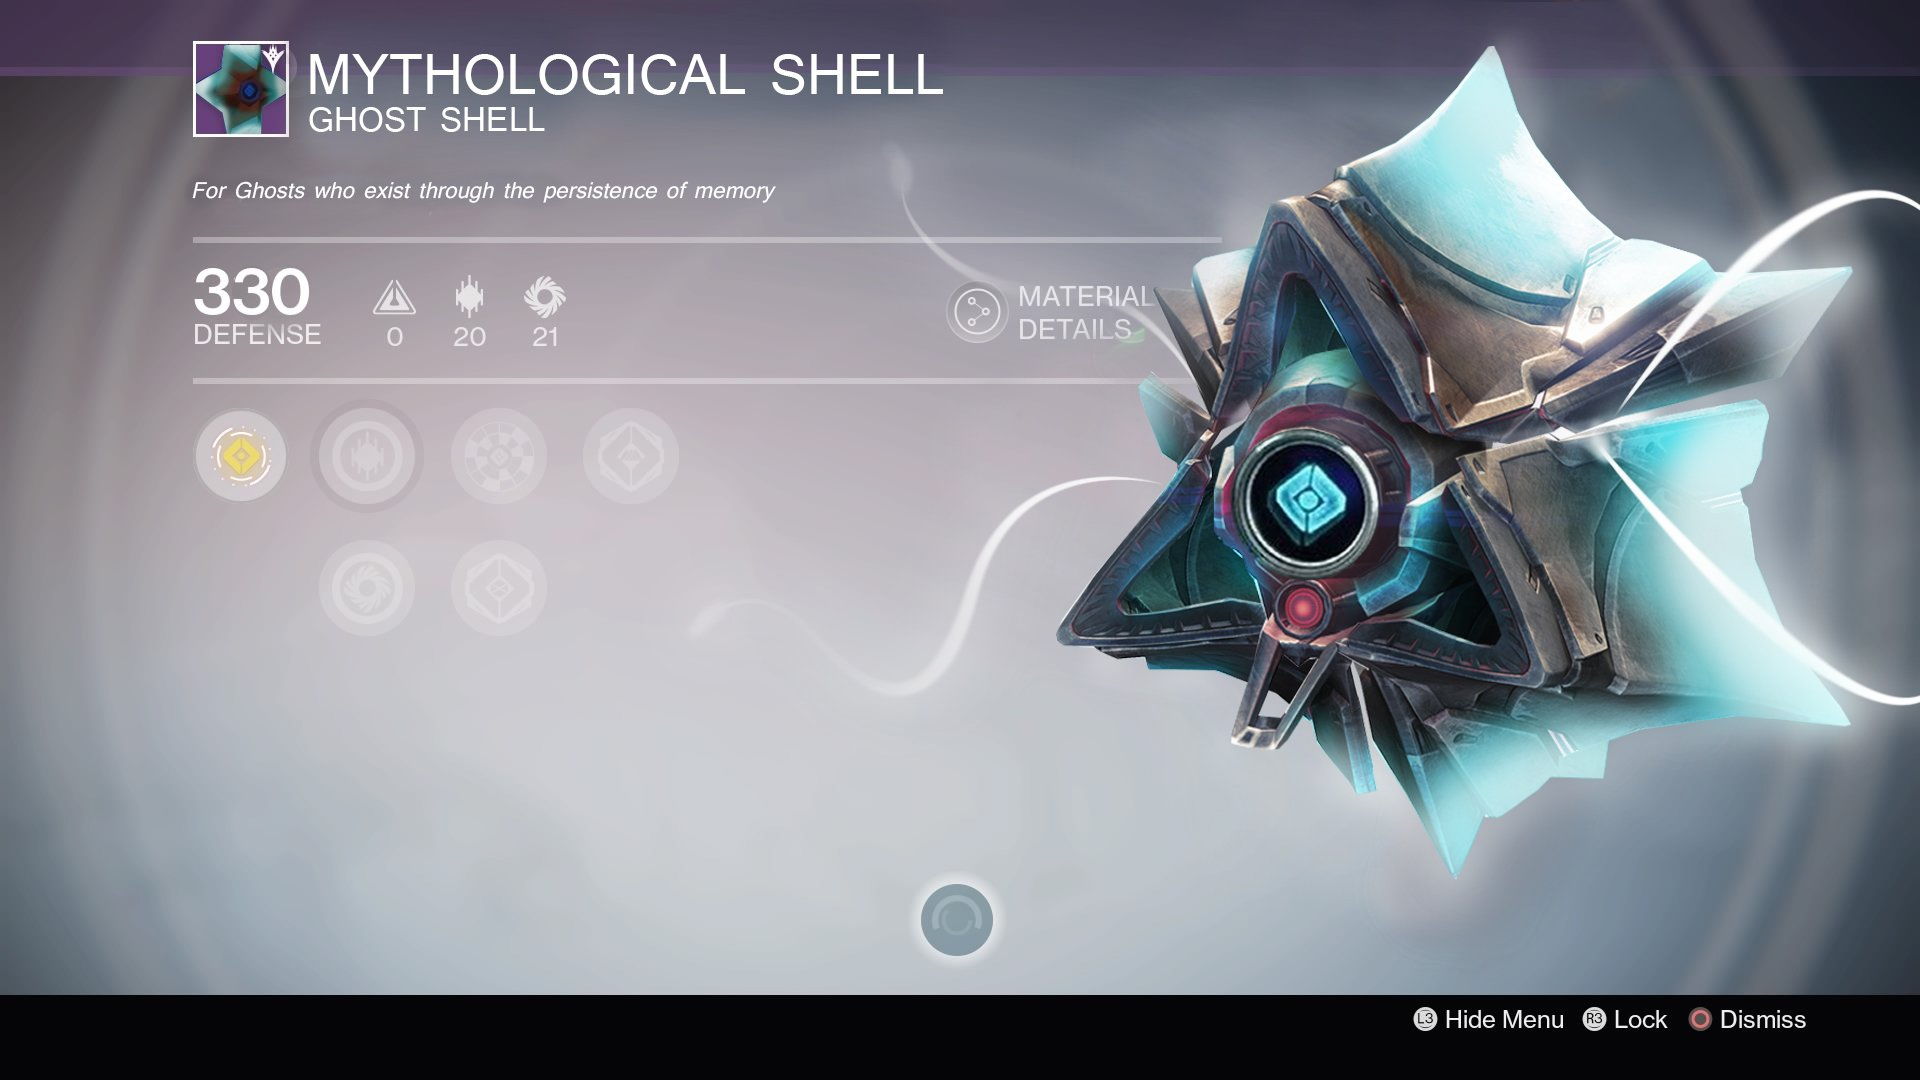 Willis On Twitter Sickest Ghost Shell Concept Via Reddit Cwspellowe Destiny Ghostshell Https T Co Fvpaymkzra